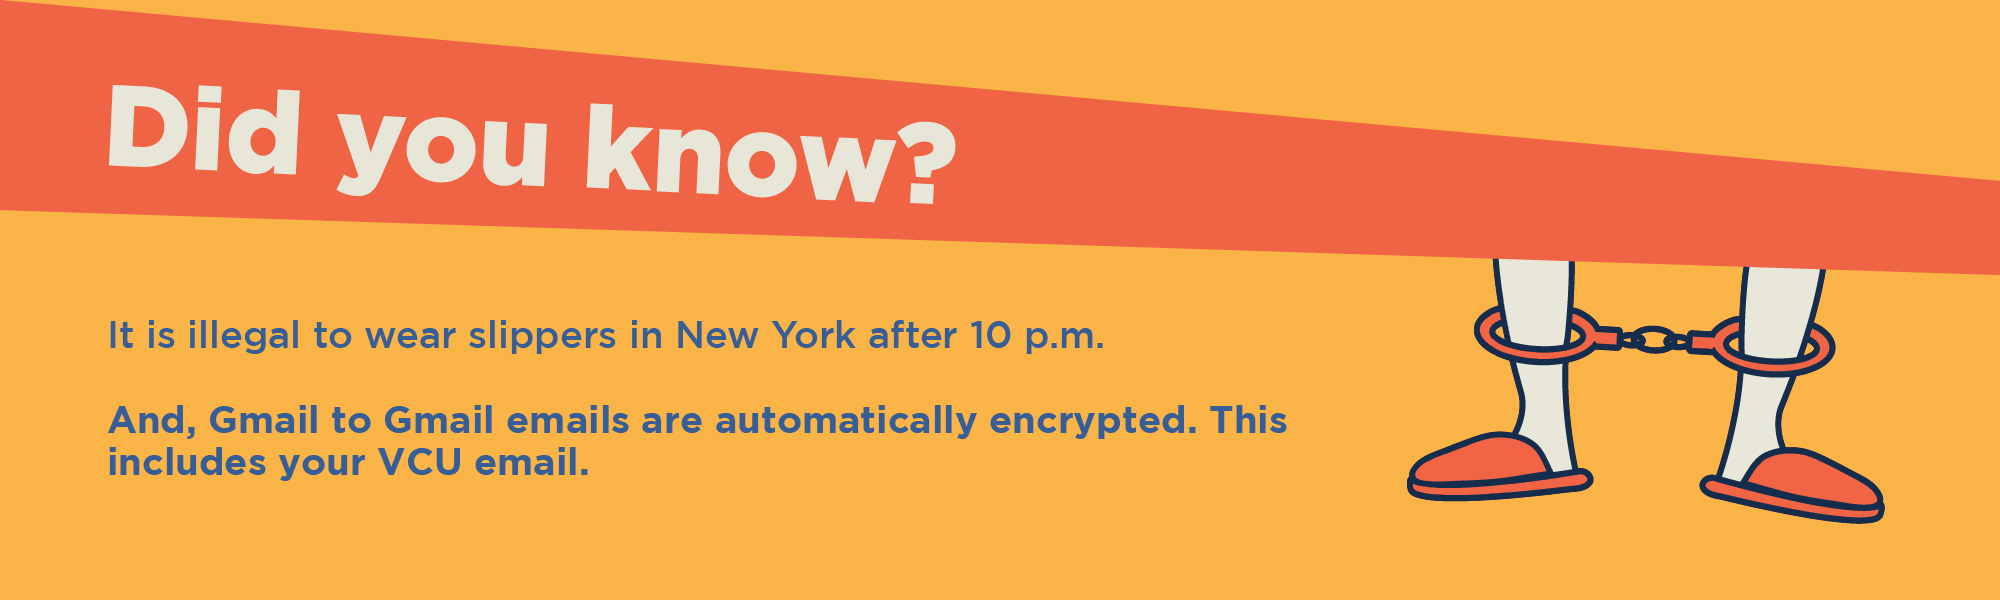 Did you know? It is illegal to wear slippers in New York after 10 P.M. And Gmail to Gmail emails are automatically encrypted. This includes your VCU email.